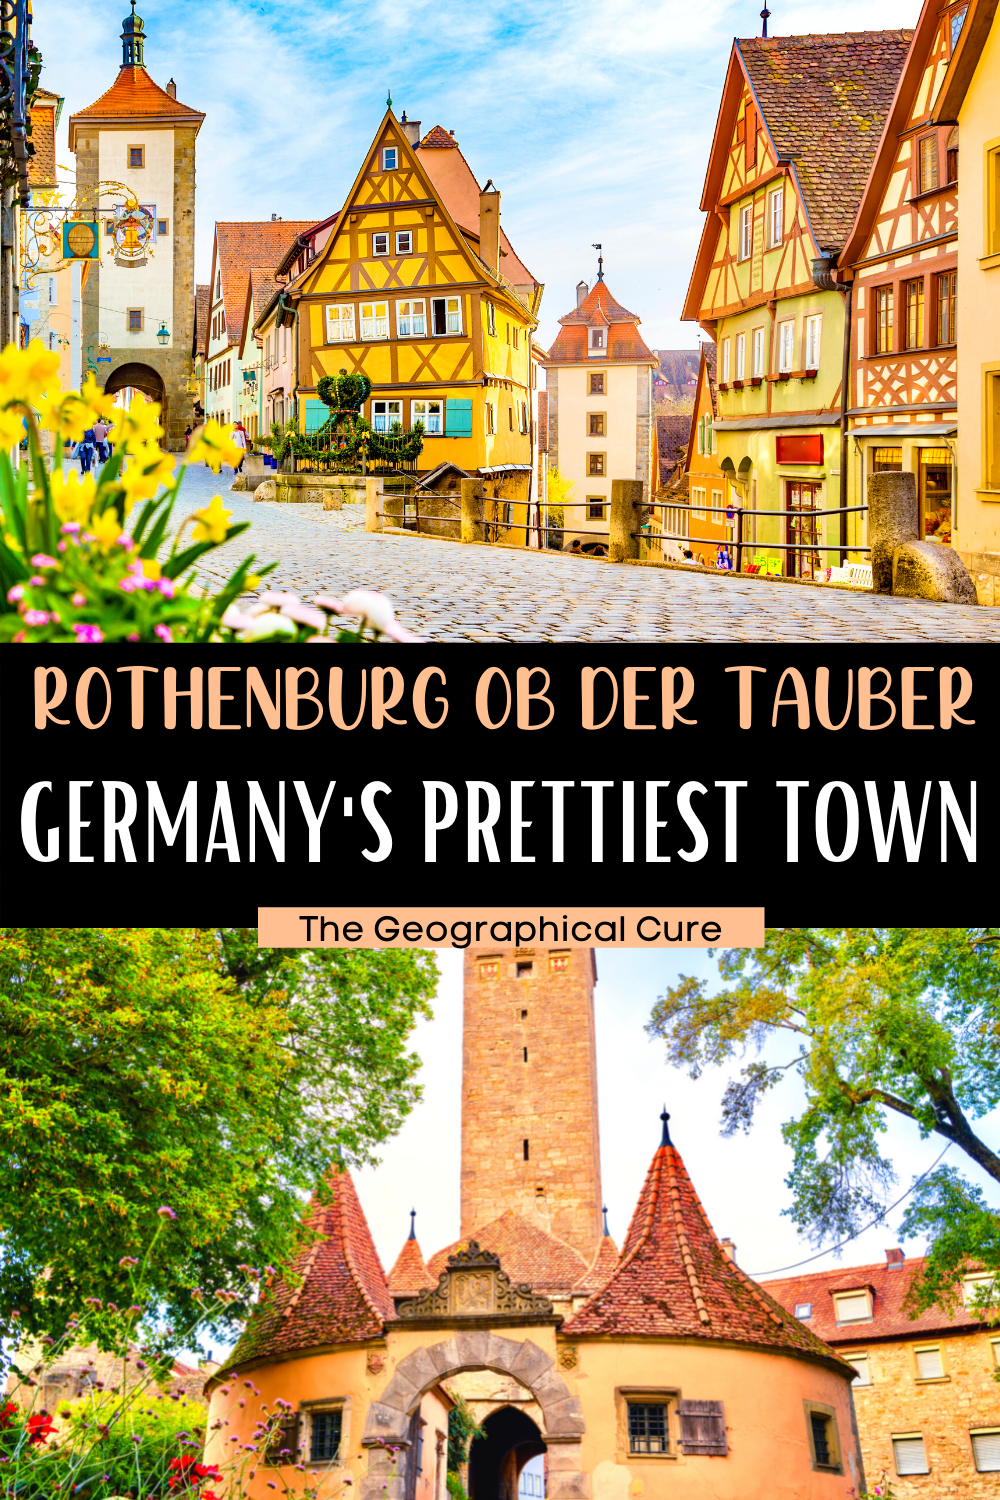 guide to the best things to do and see in Rothenburg ob der Tauber, Germany's prettiest town